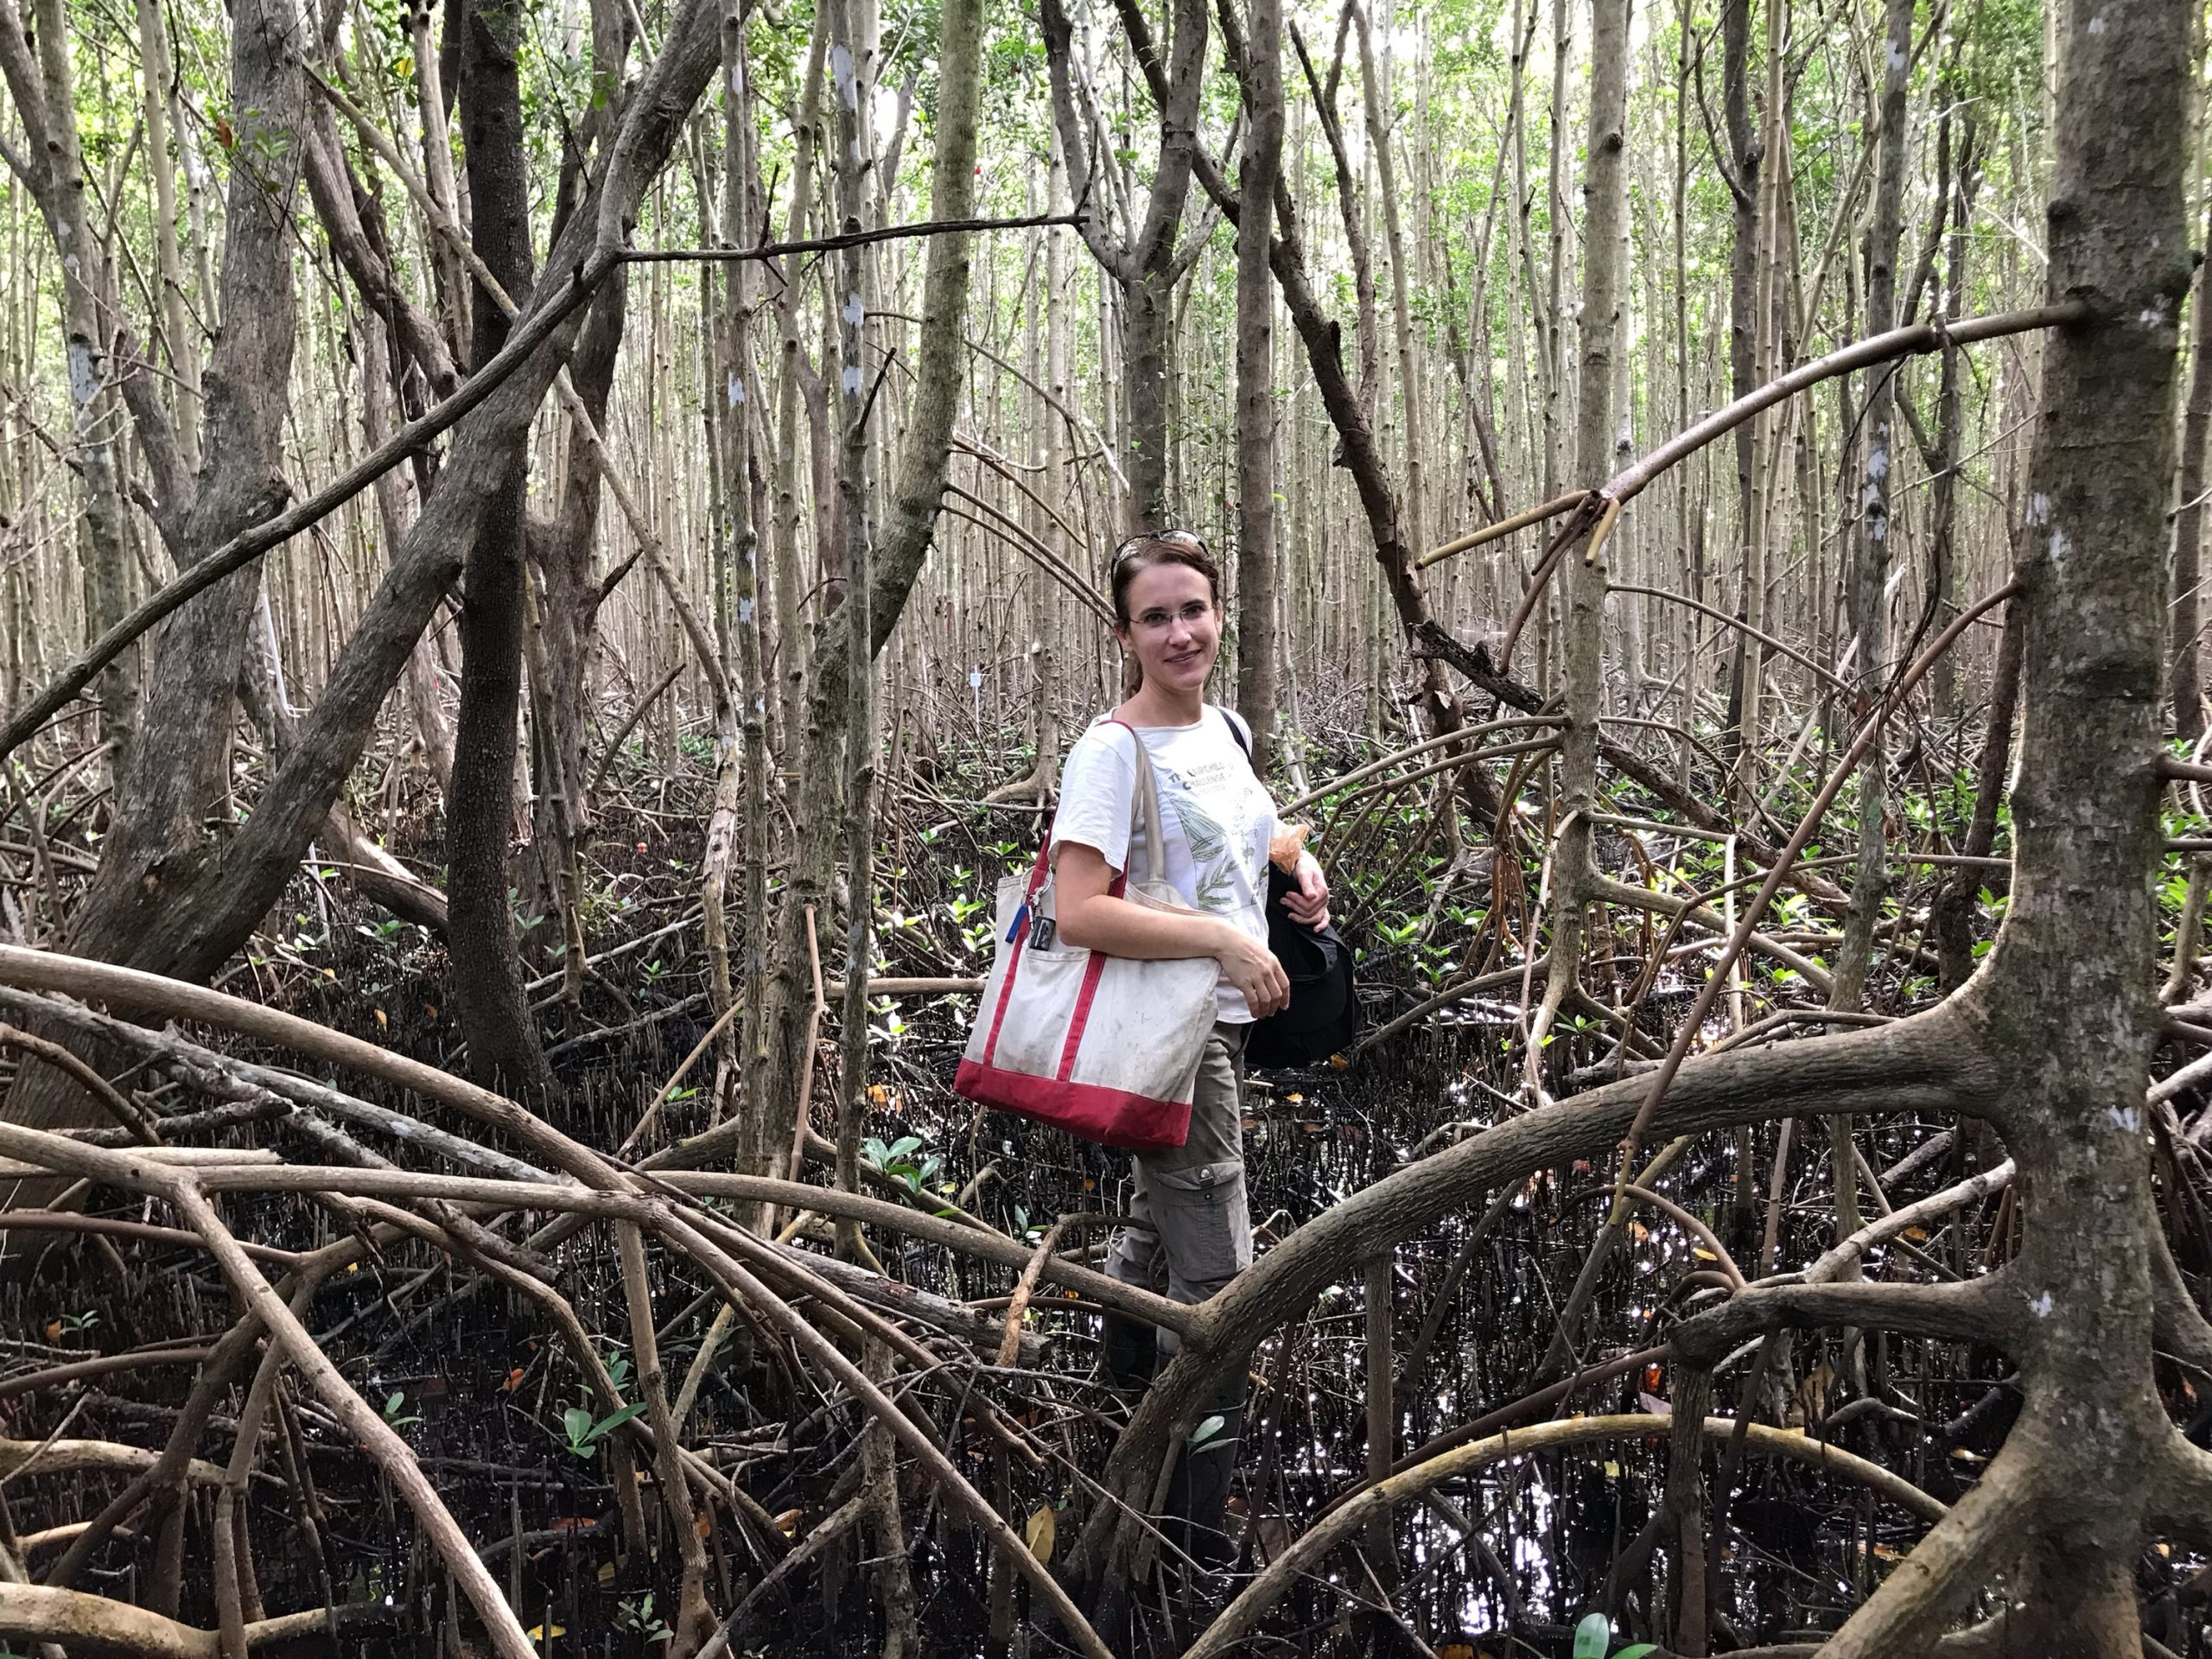 At the Deering Estate in Miami, Jennifer enjoys trekking through the prop roots of the tall mangroves to reach monitoring plots in the preserve.